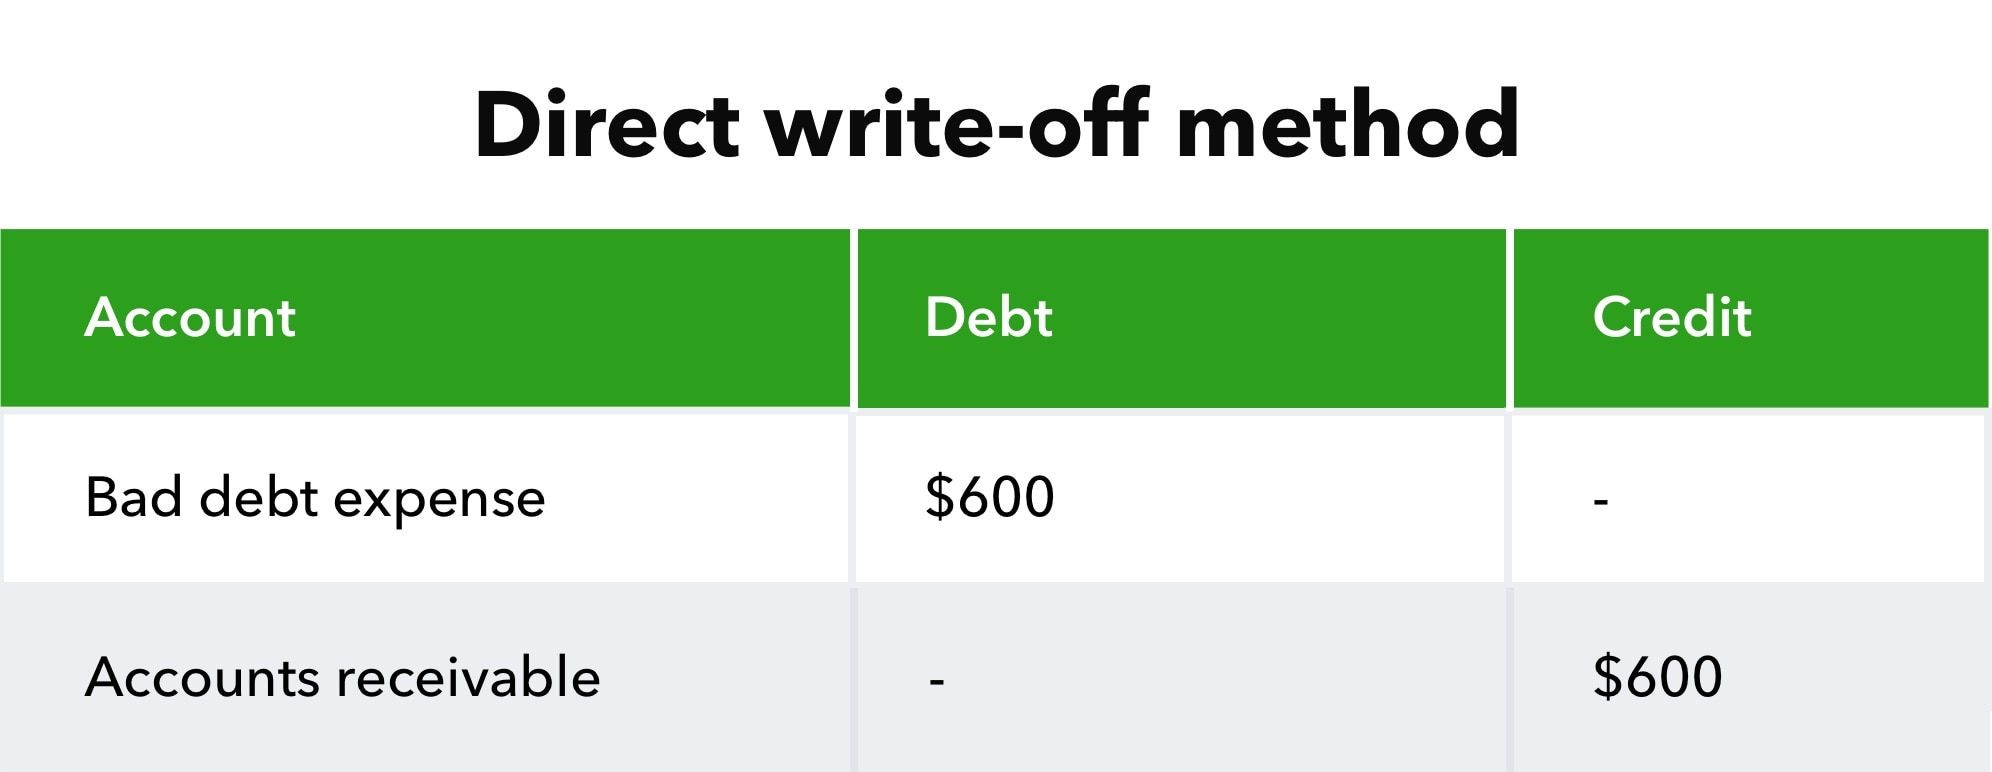 Direct write-off method table